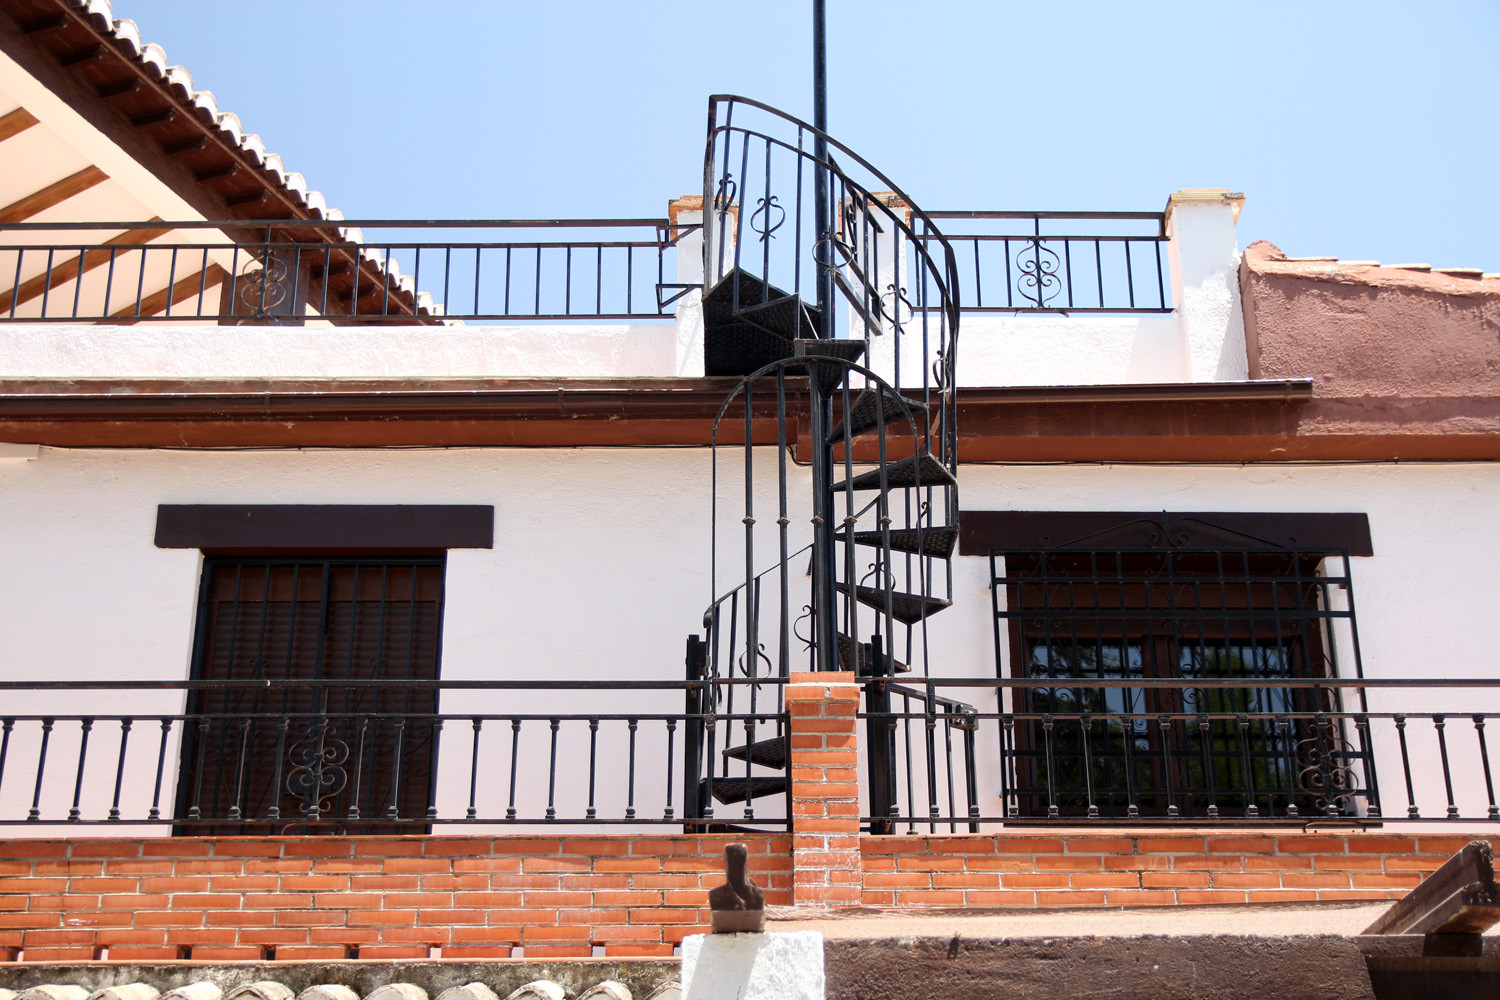 The winding staircase that leads to the roof terrace